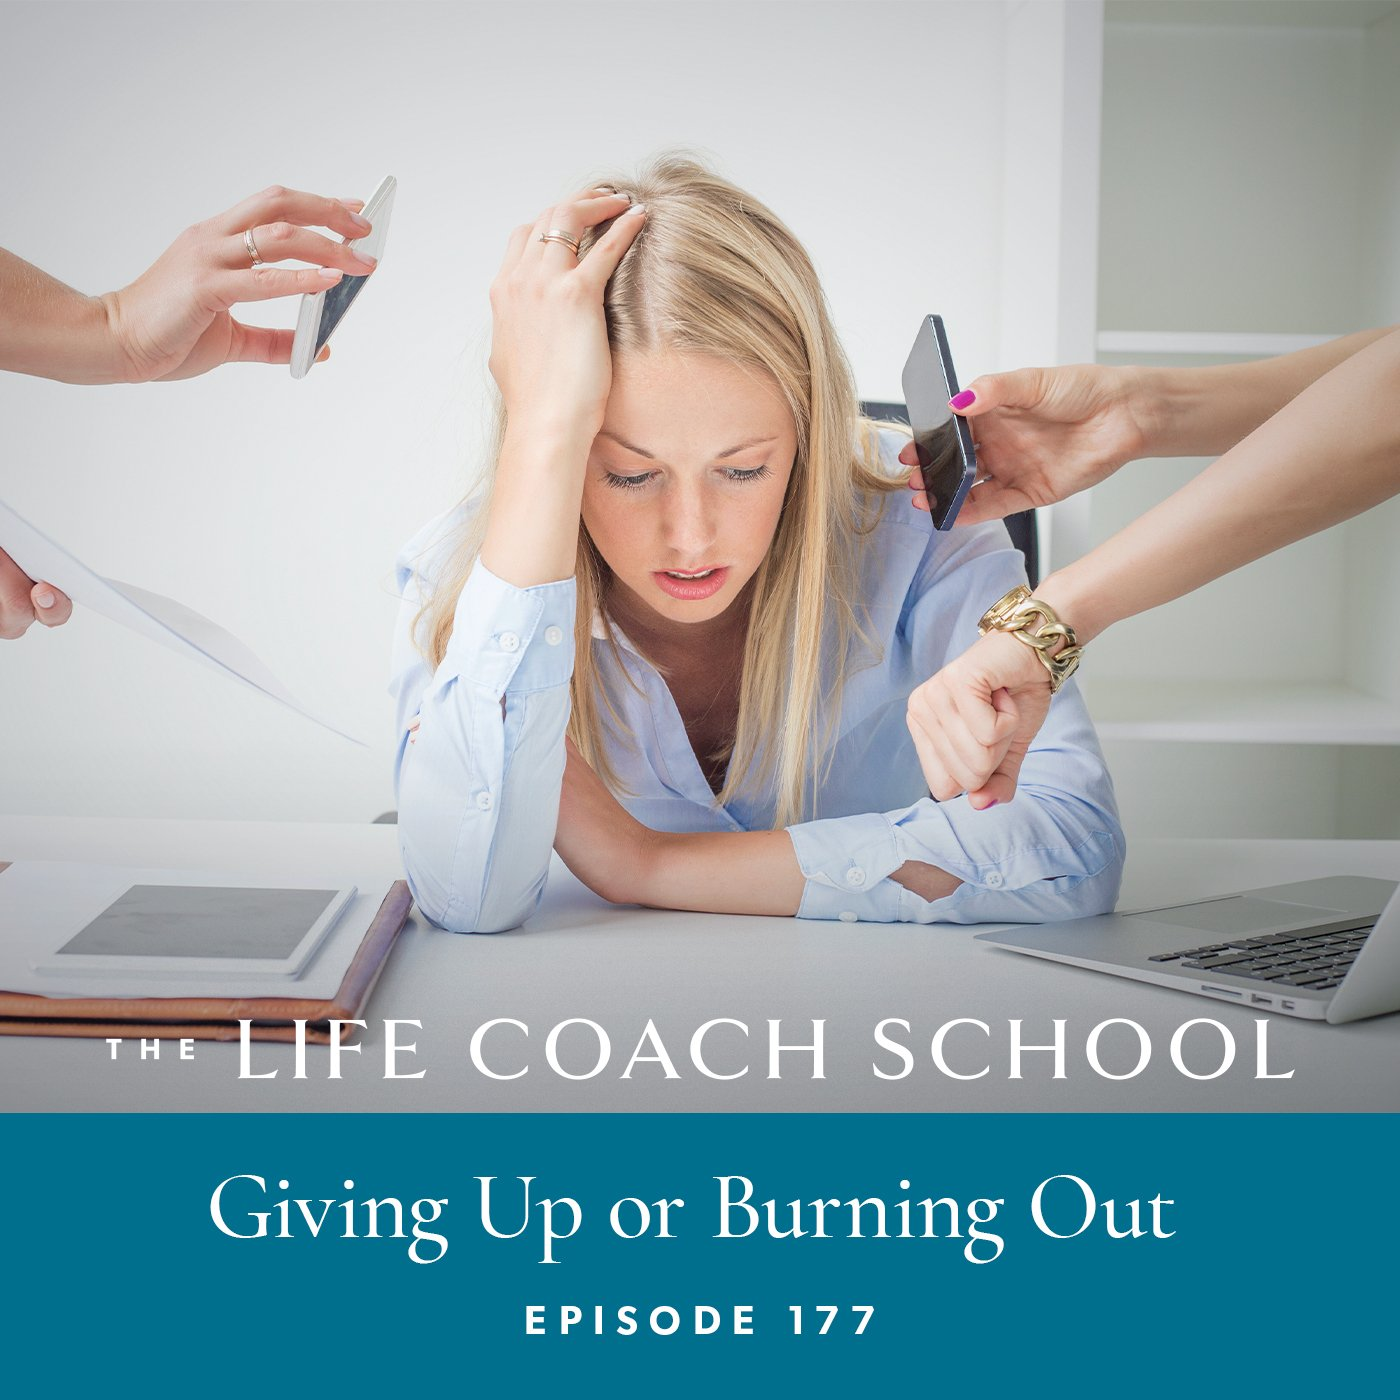 The Life Coach School Podcast with Brooke Castillo | Episode 177 | Giving Up or Burning Out